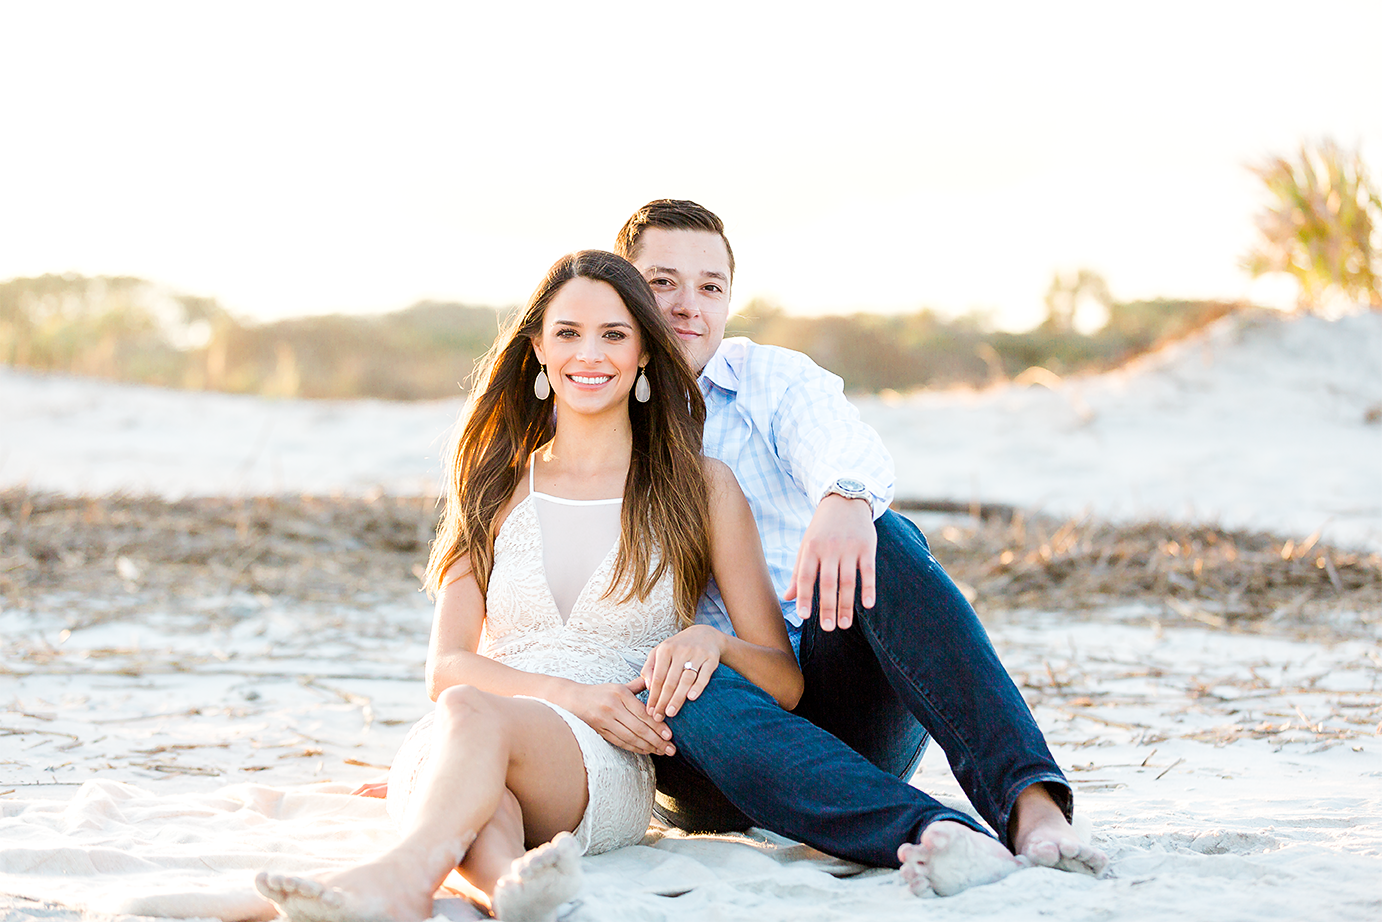 sunset engagement picture ideas